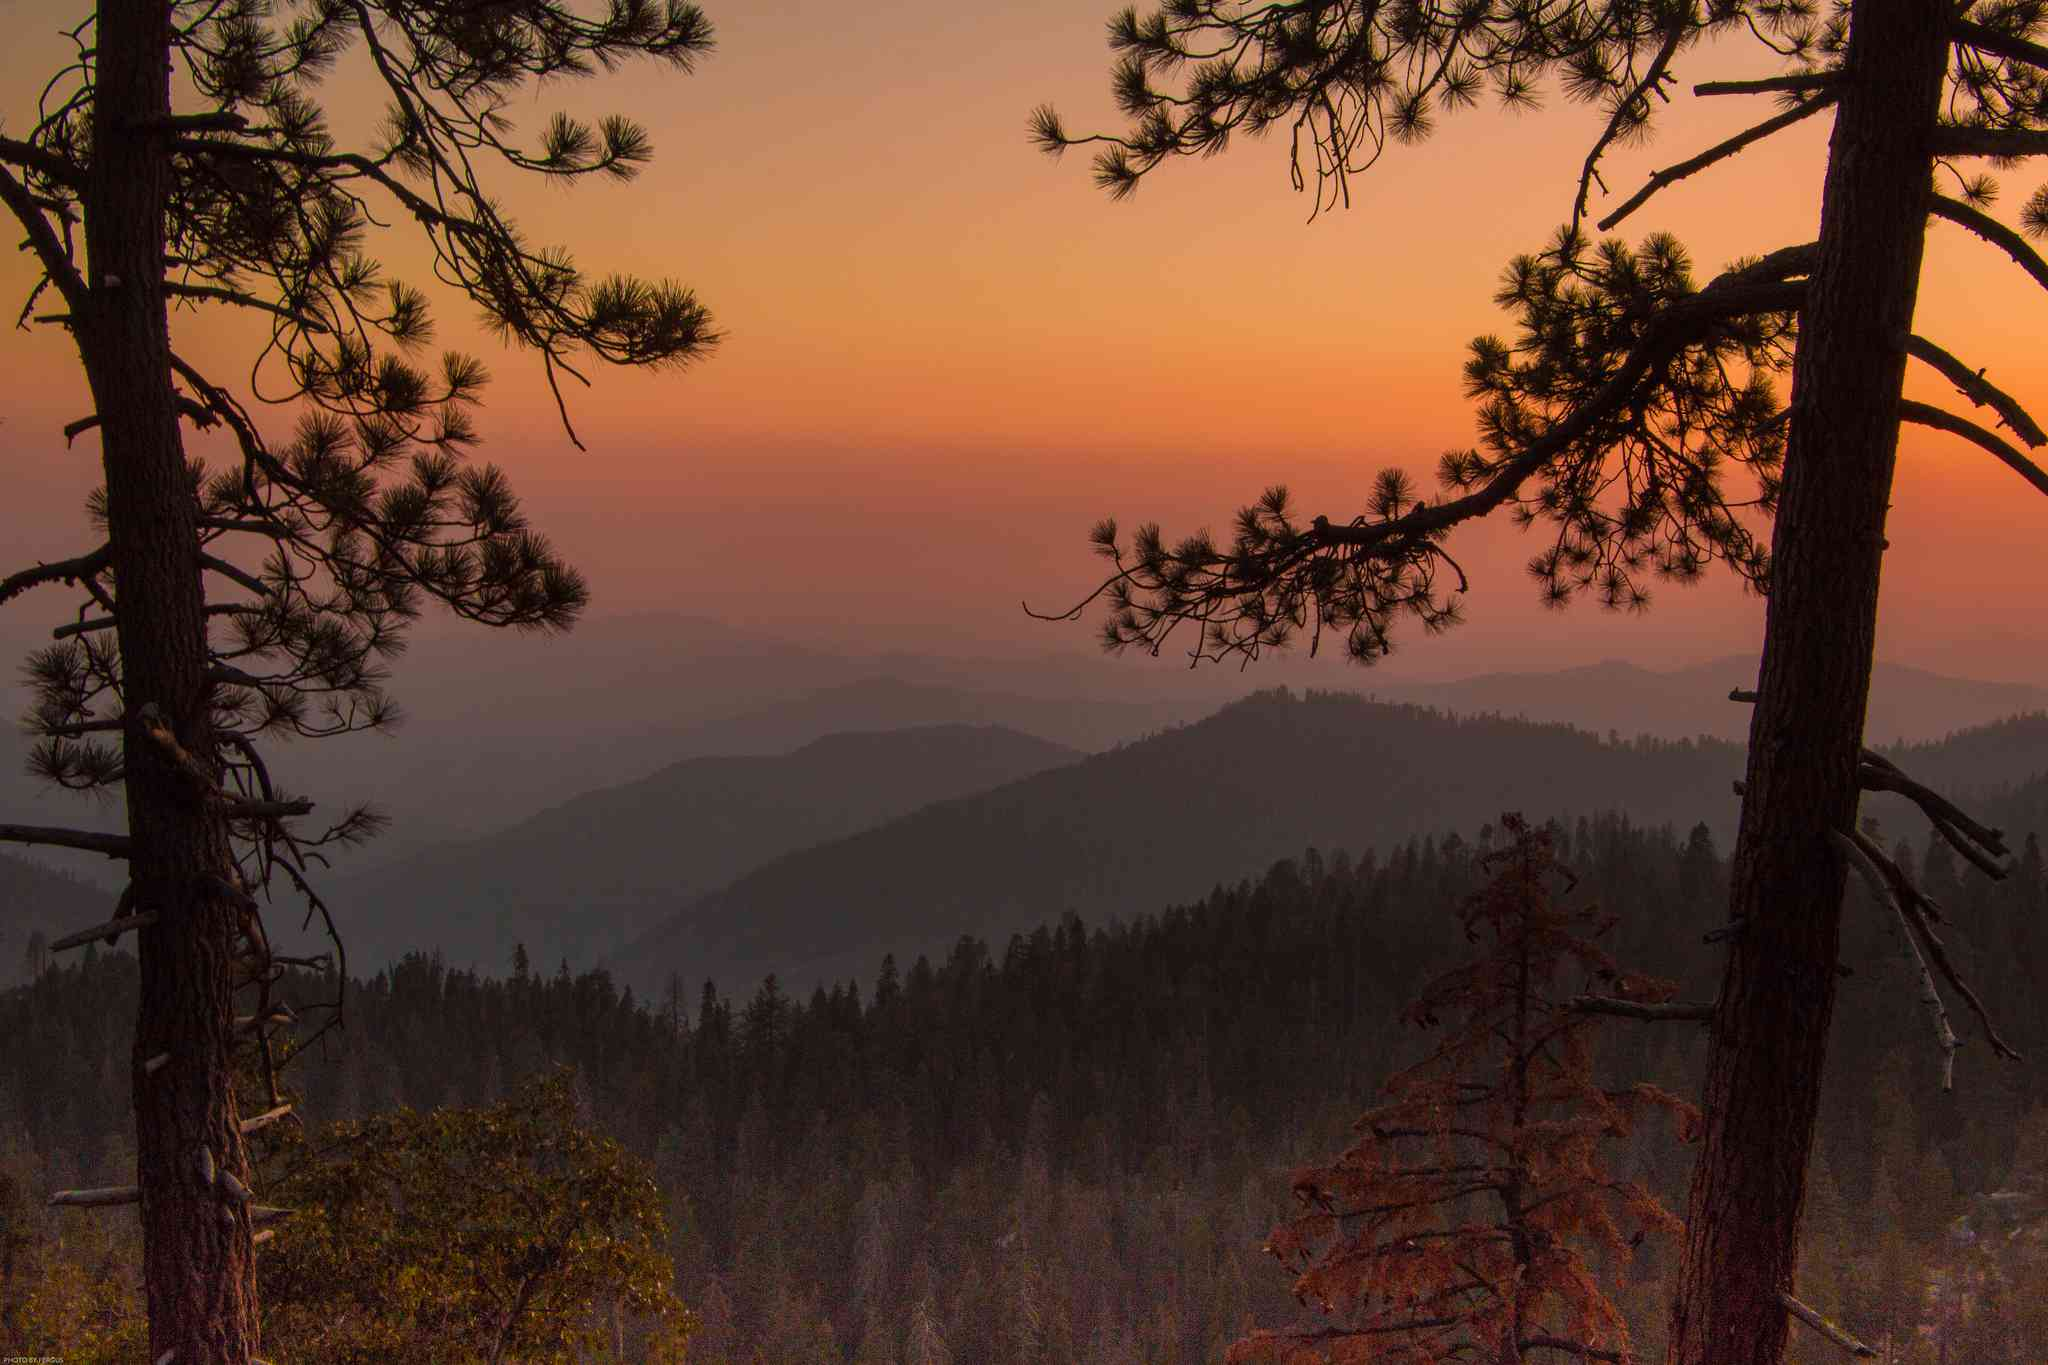 Driving Distance From Los Angeles to National Parks